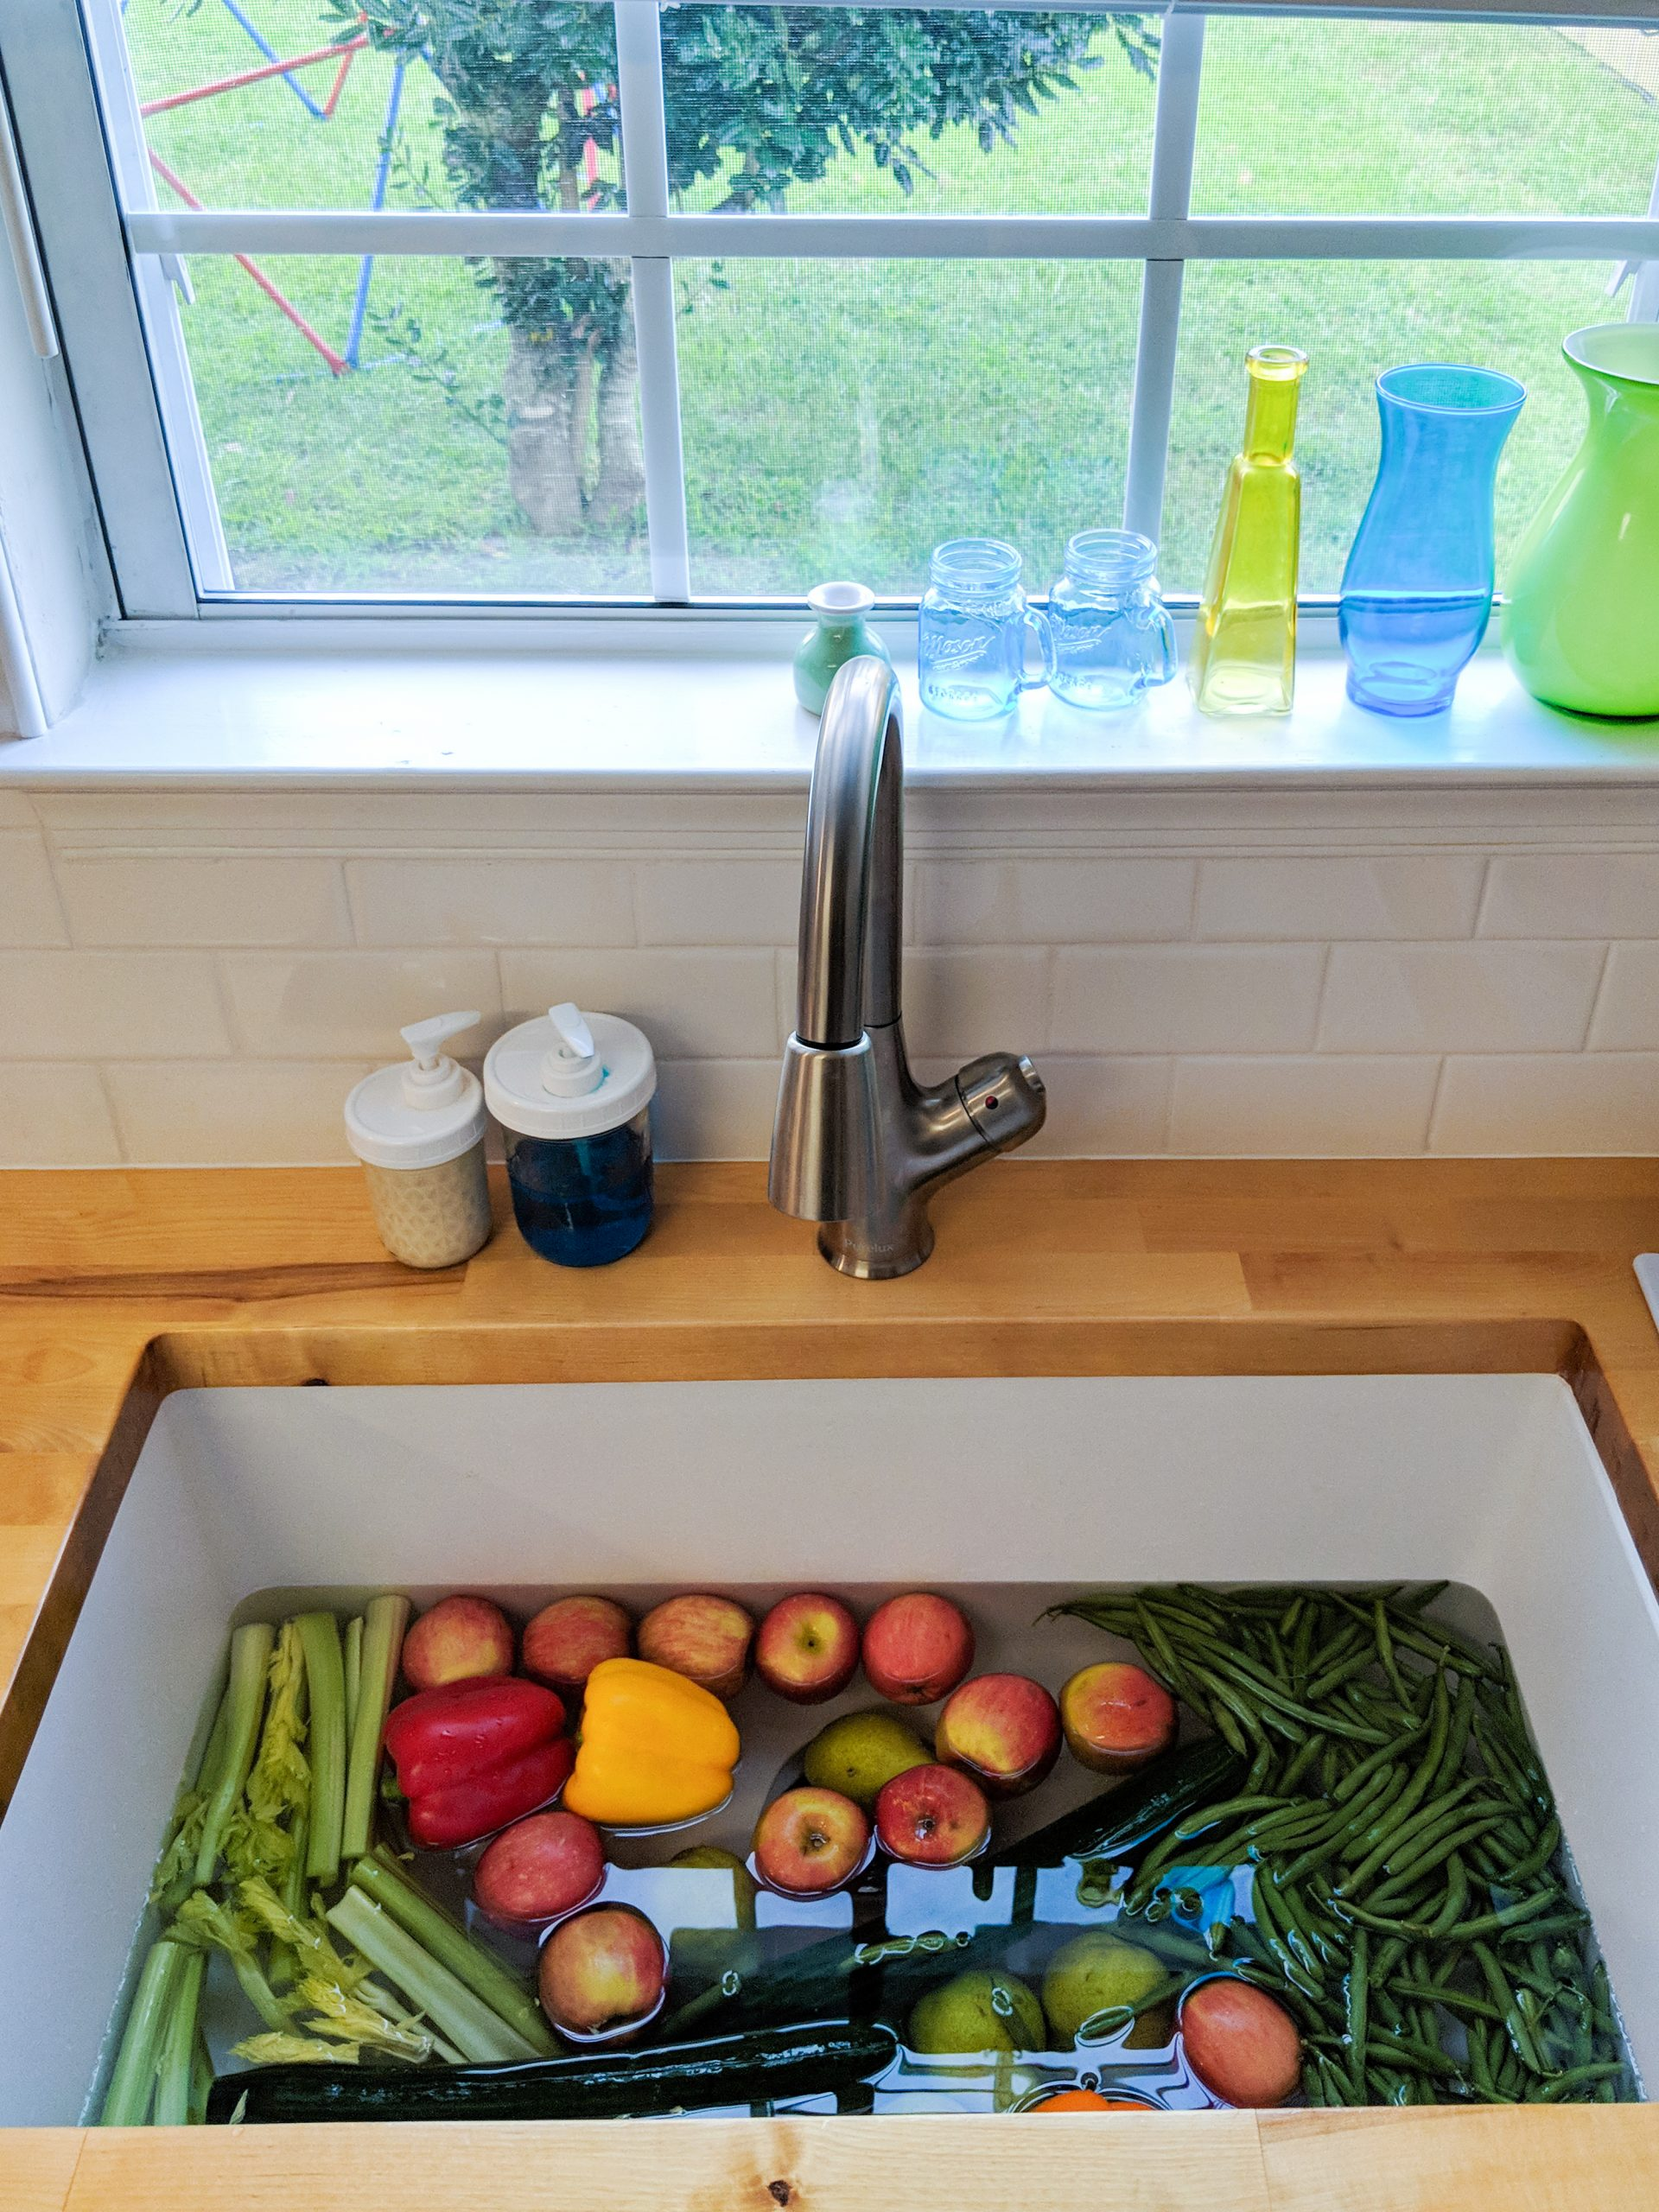 lots of fruit and vegetables soak in a gigantic white sink, surrounded by butcher block counters and subway tile backsplash.